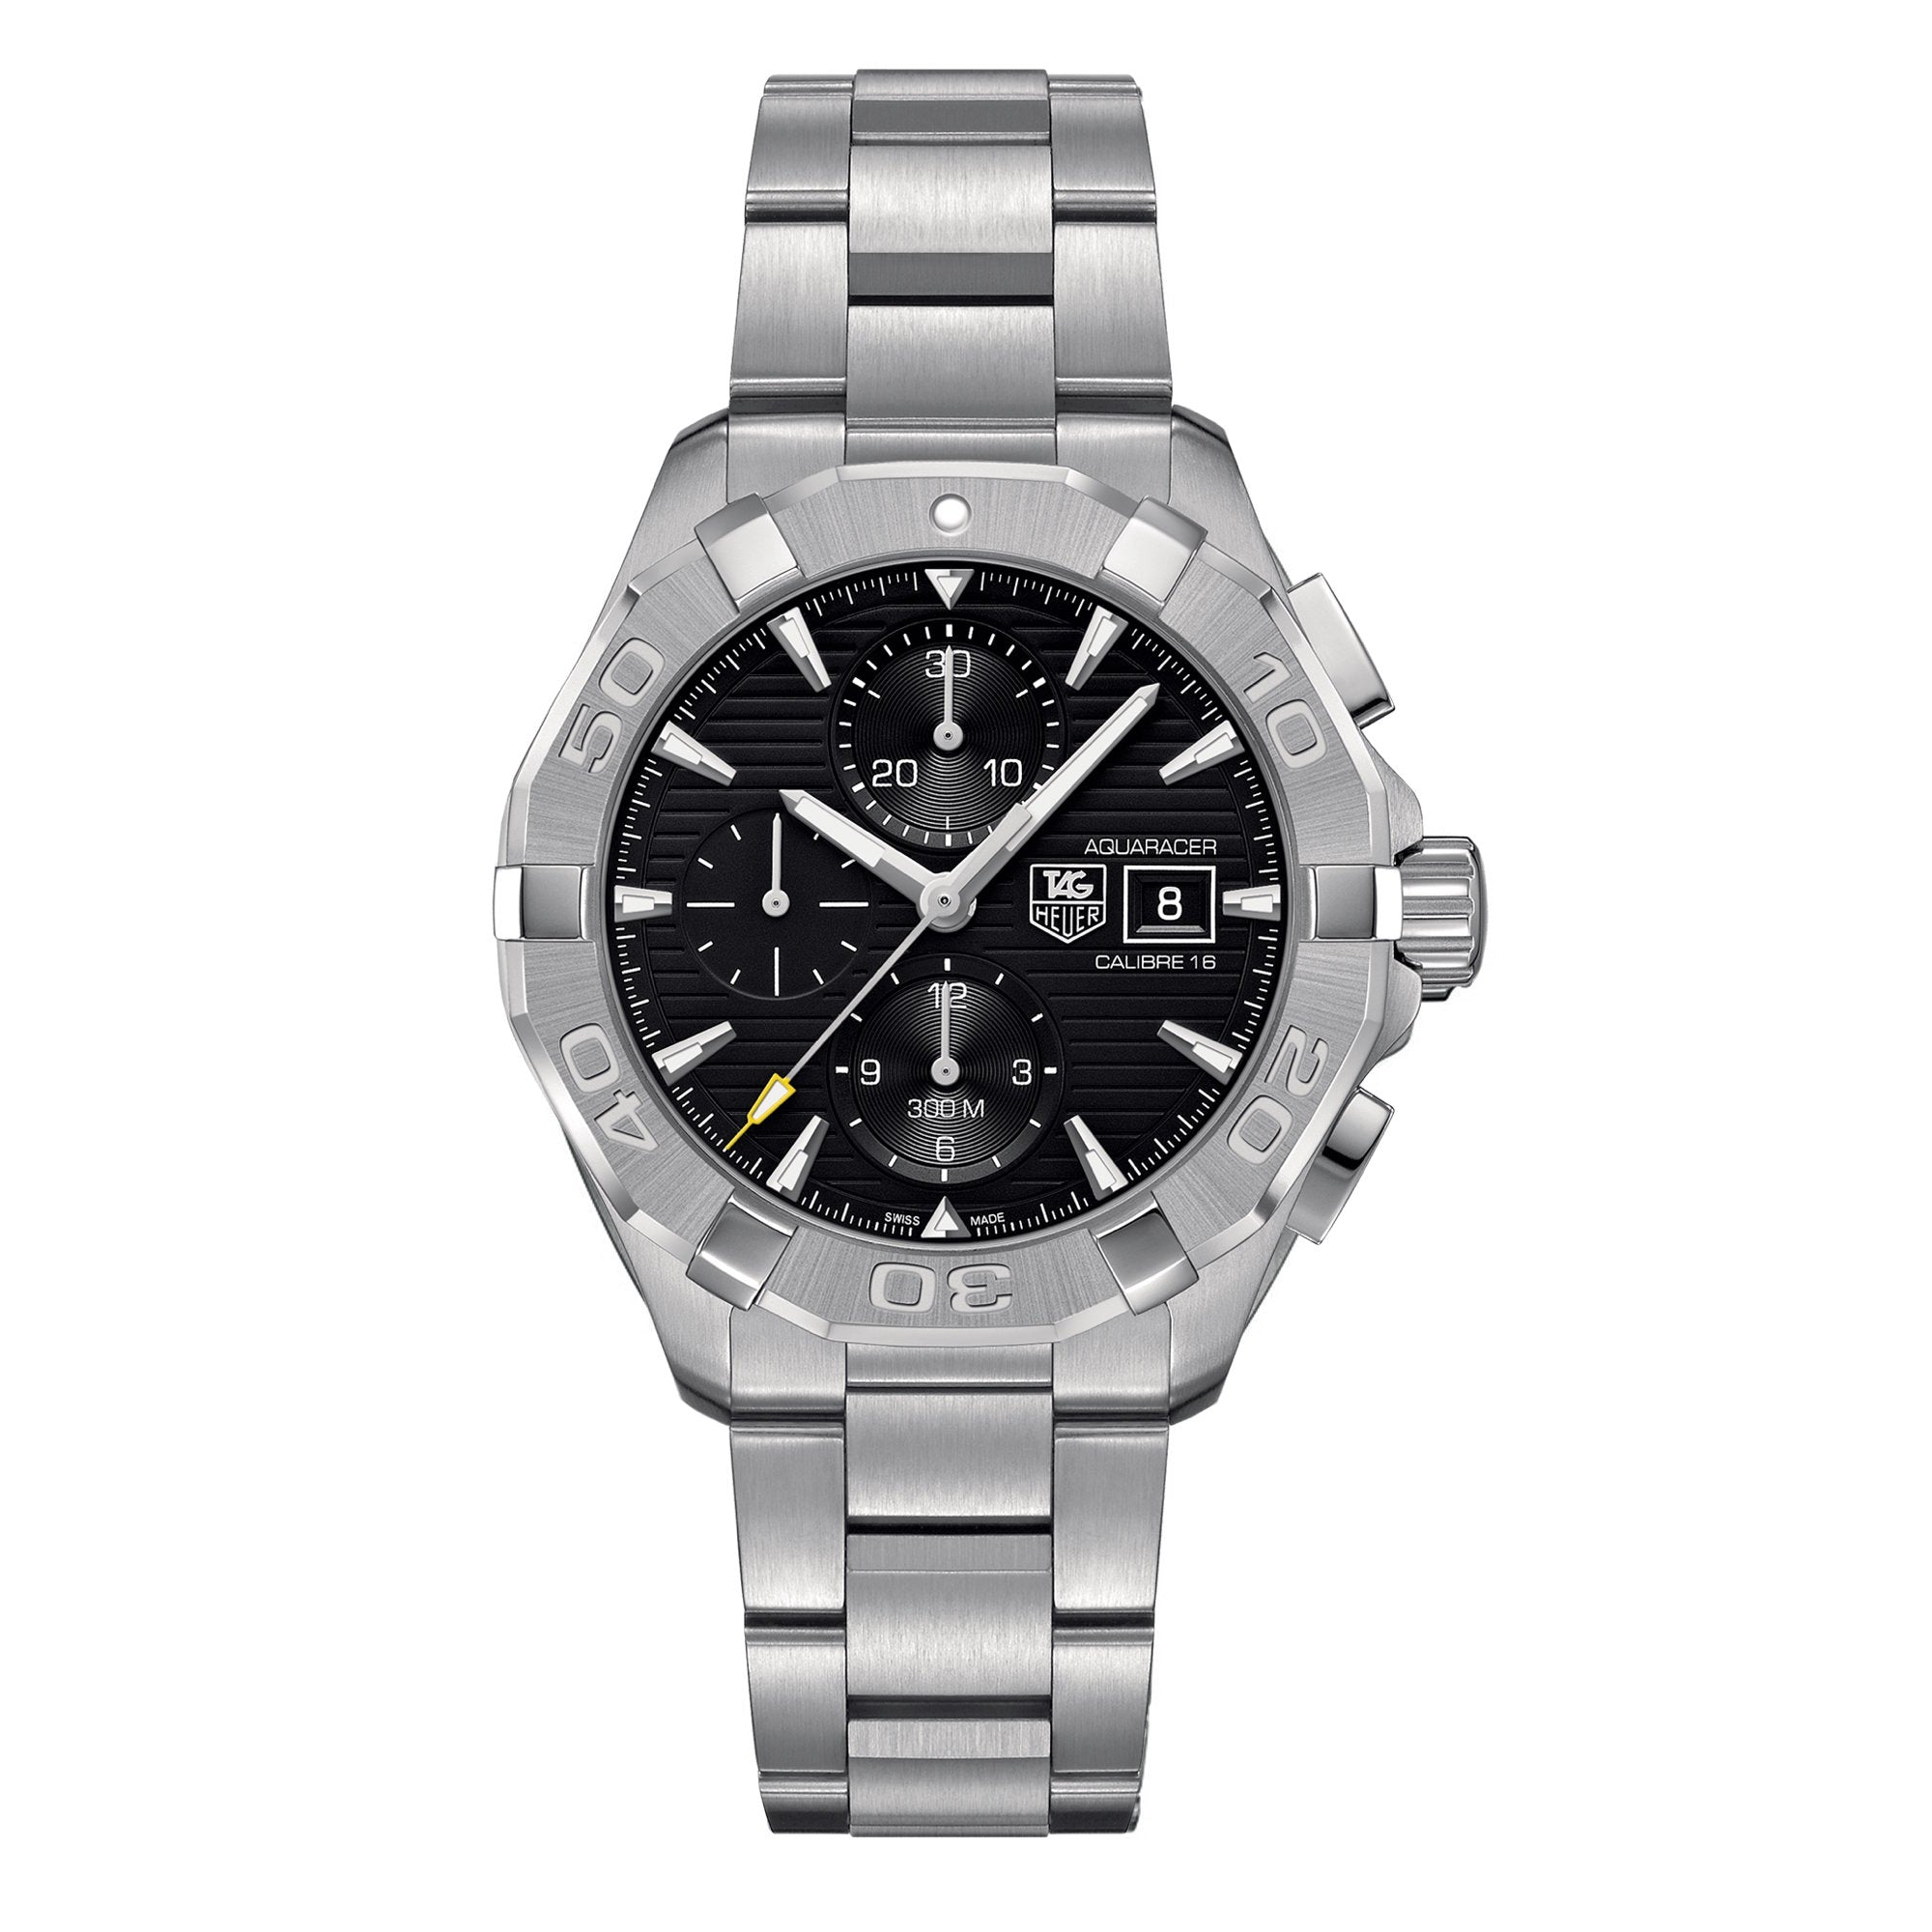 d80e58f4d7e TAG HEUER AQUARACER CALIBRE 16 – Little Switzerland